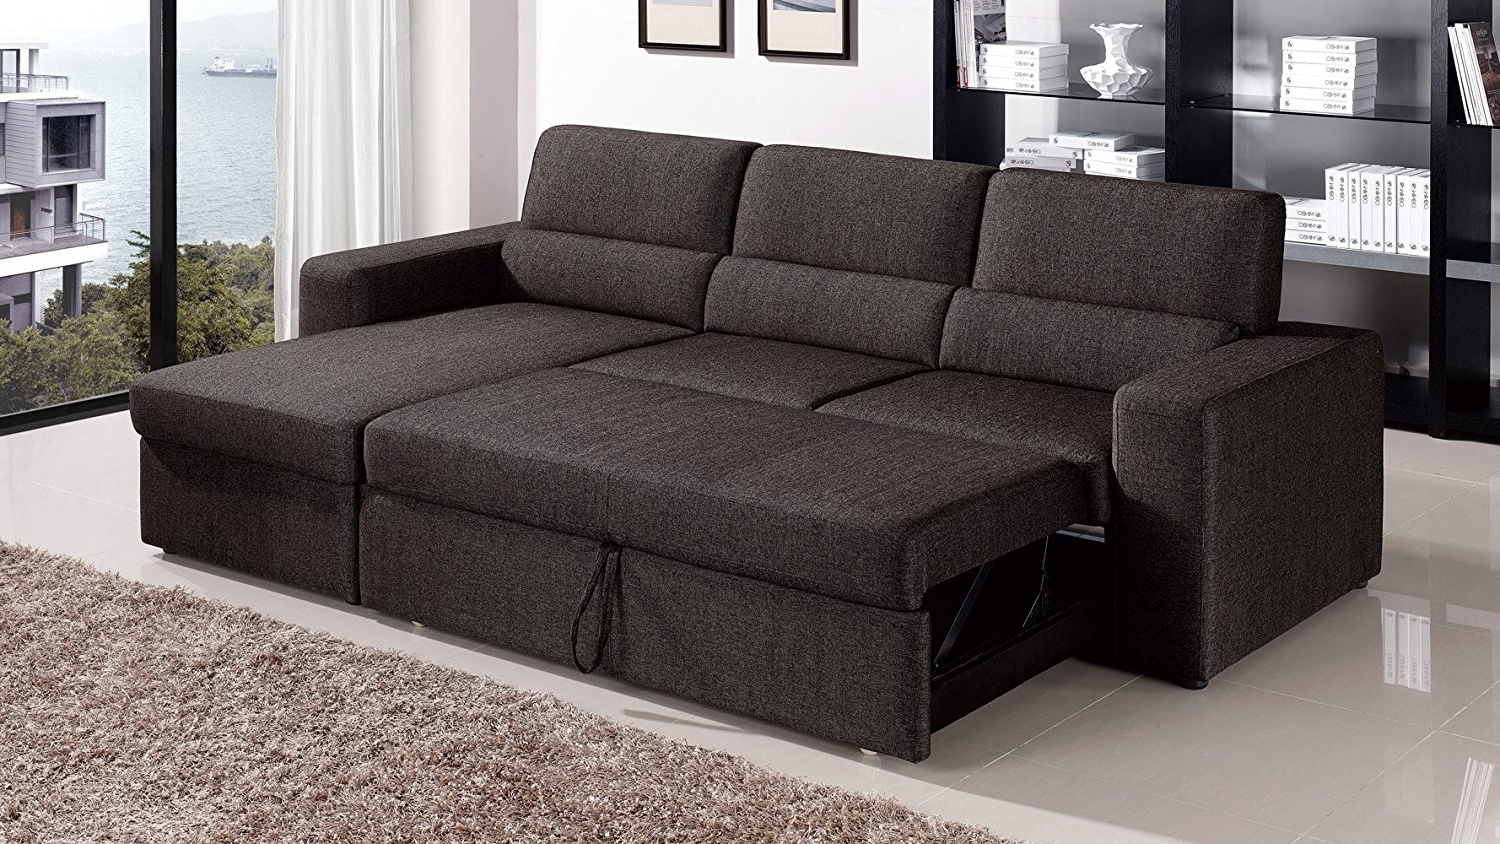 Amazon: Black/brown Clubber Sleeper Sectional Sofa – Right With Well Known Sectional Sleeper Sofas With Chaise (View 1 of 15)